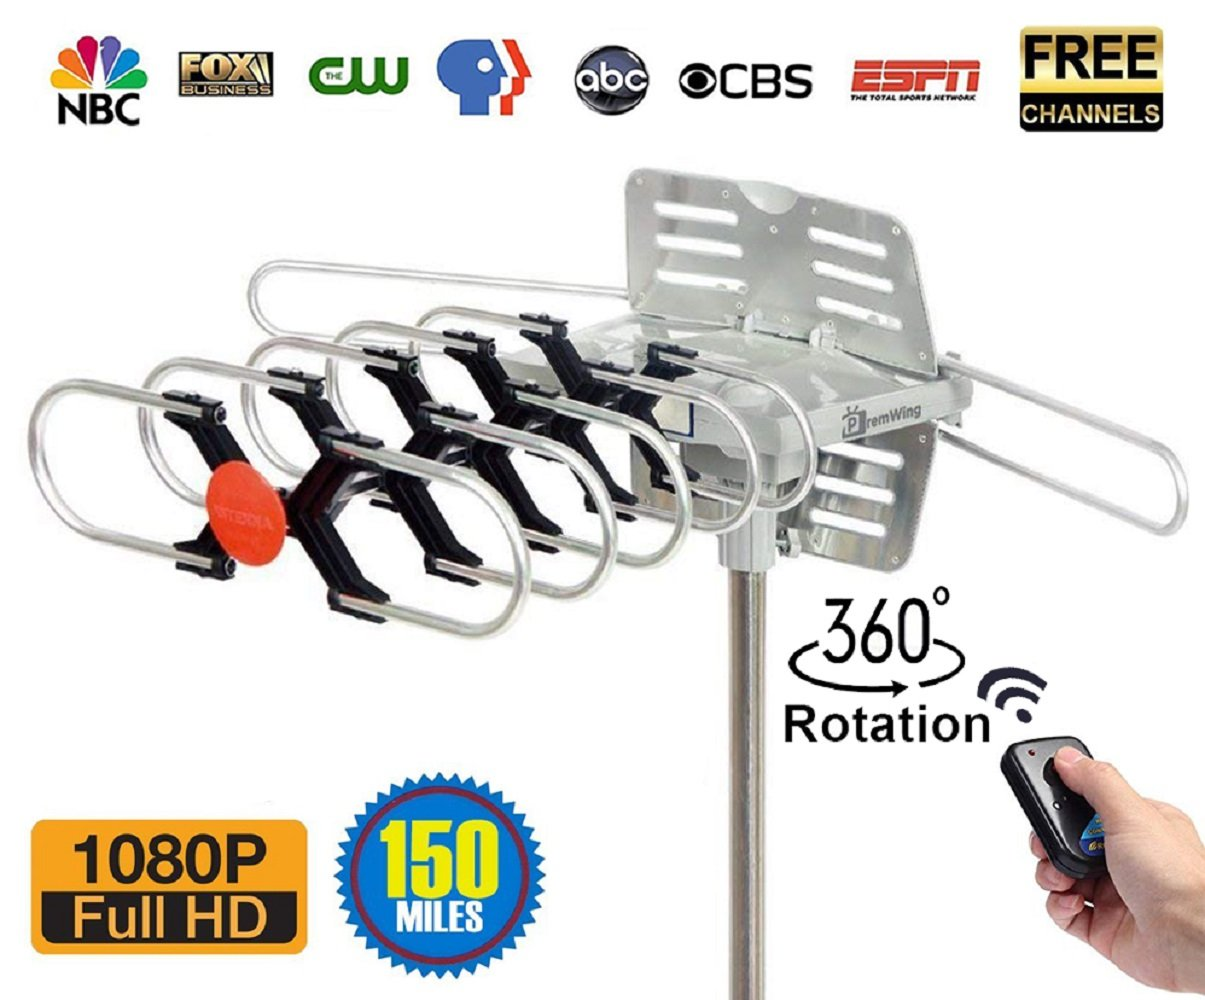 Outdoor Digital TV Antenna - Premwing 150 Miles Long Range HD Amplified Antenna for Free Channels FM/VHF/UHF Signal, Dual TV Outputs Support & 360 Degree Motorized Rotation